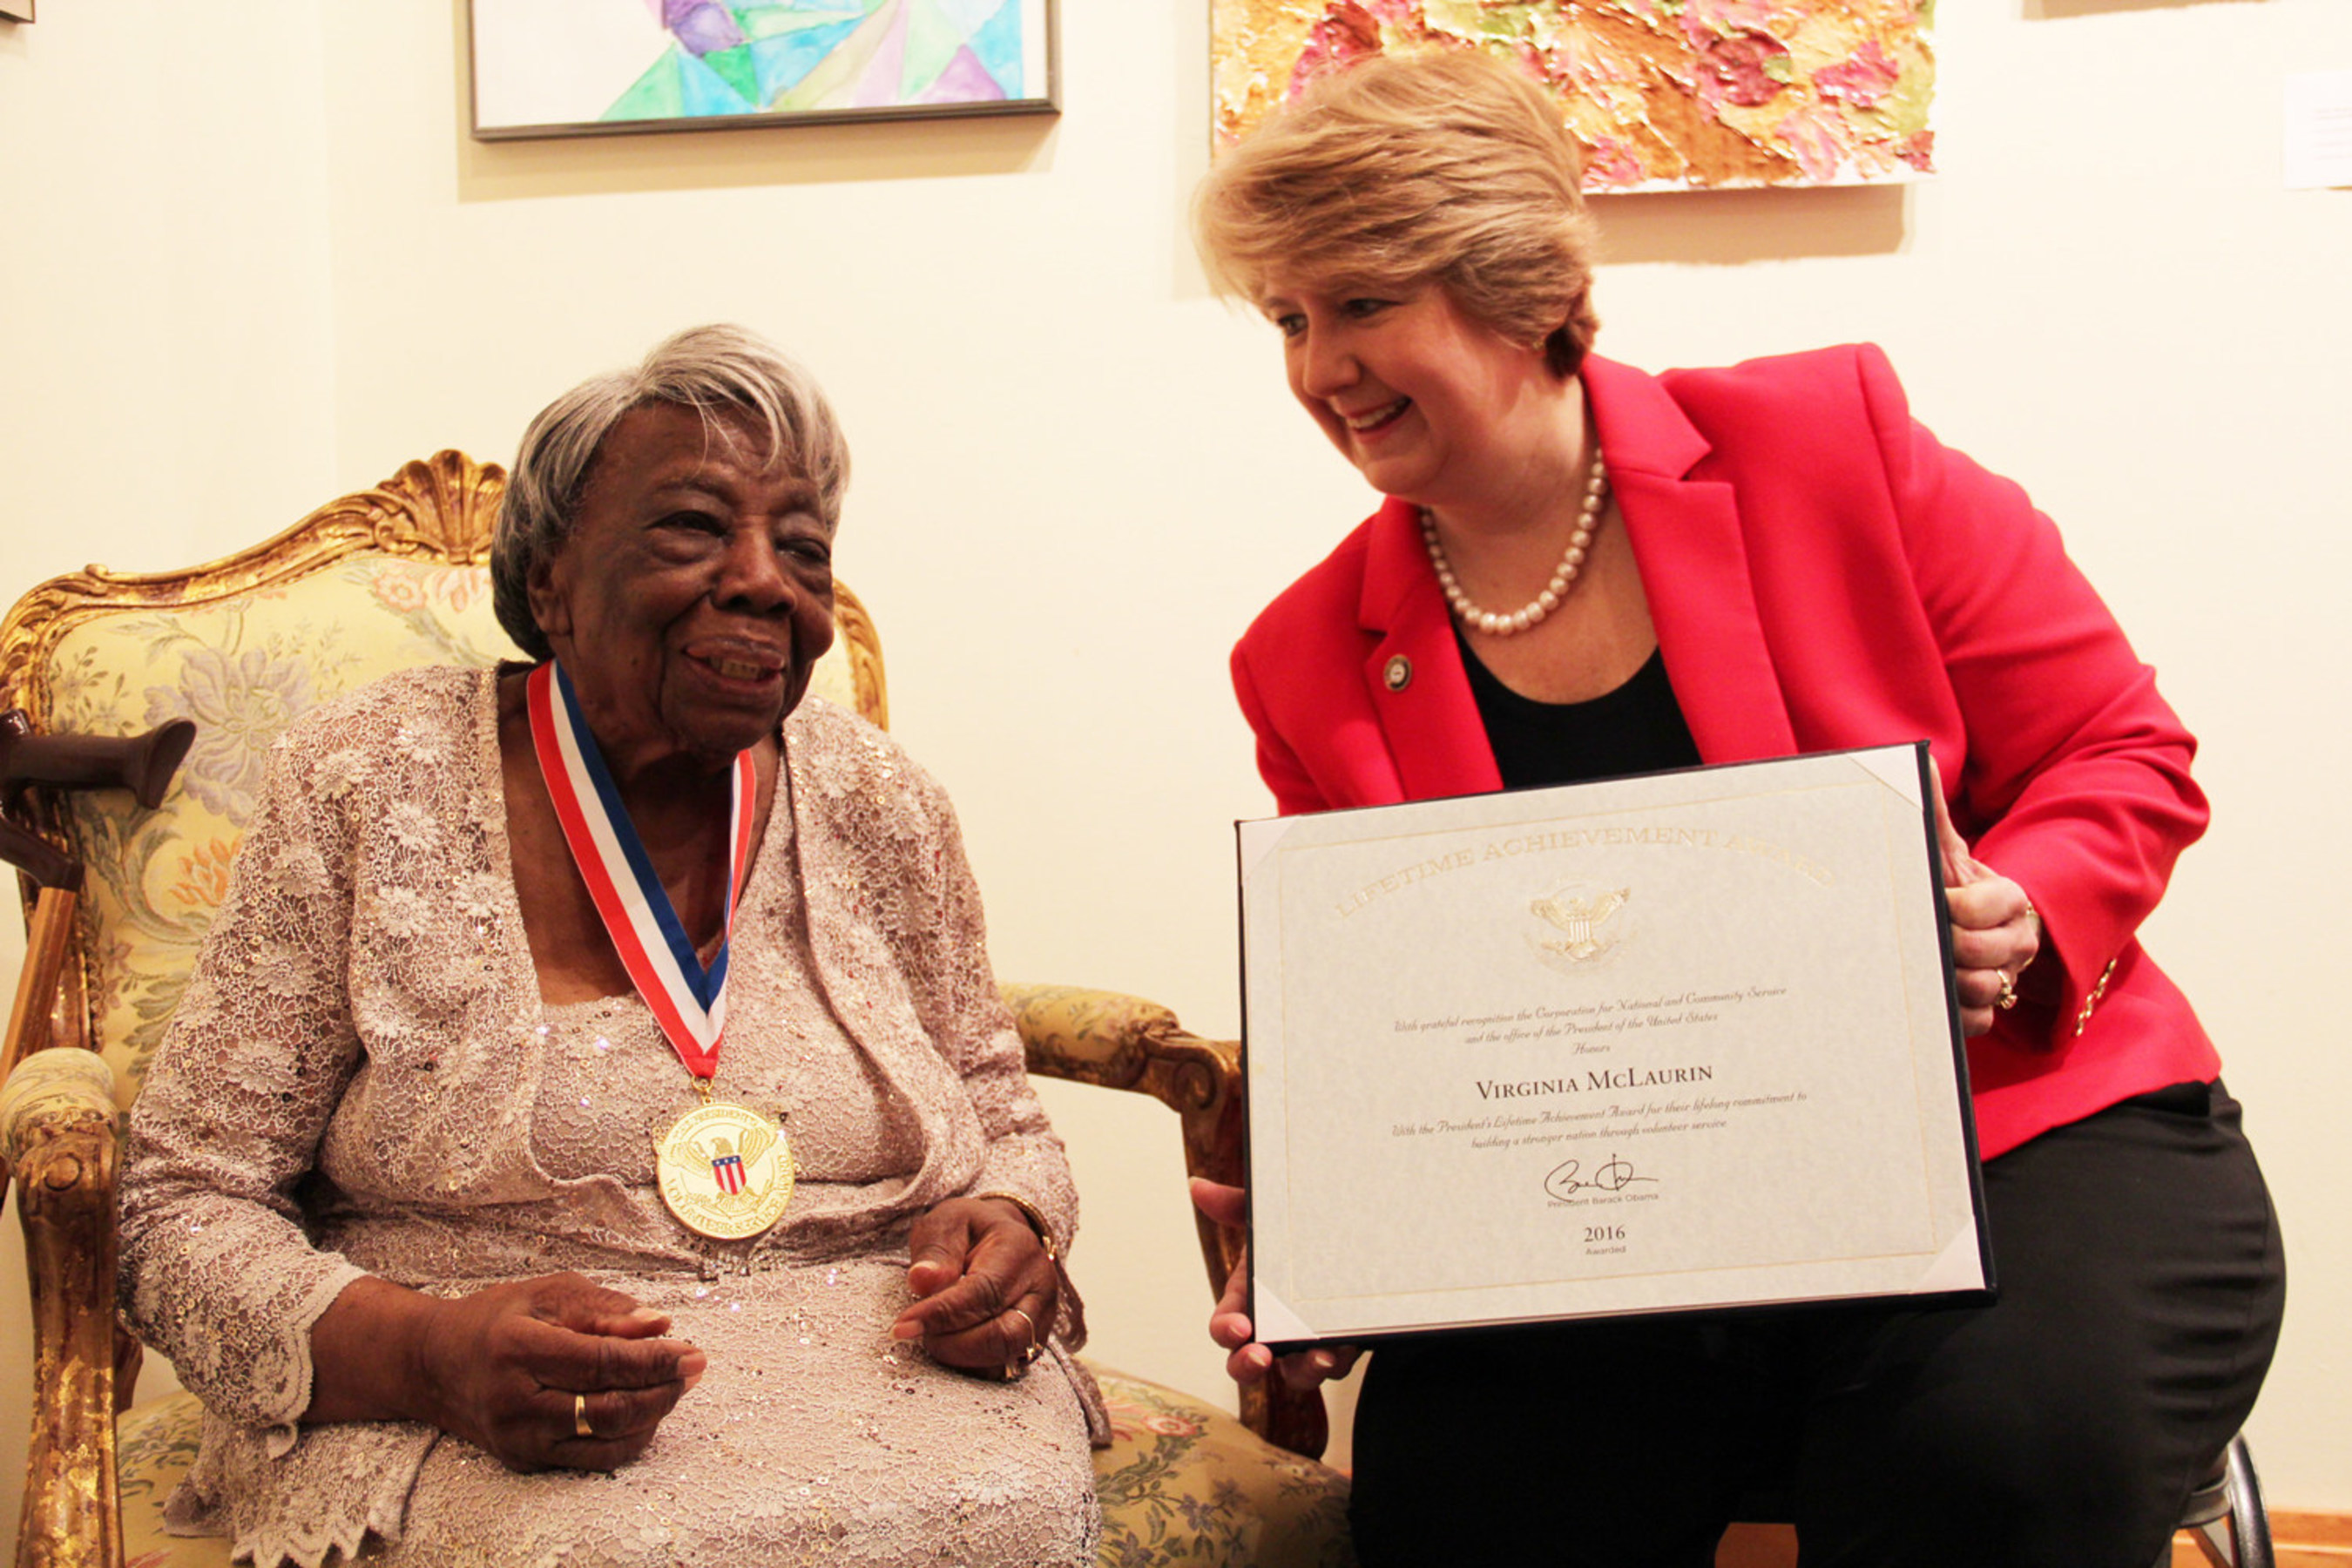 Wendy Spencer, CEO of the Corporation for National and Community Service, presents Ms. Virginia McLaurin, a Senior Corps volunteer, with the President's Volunteer Service Award for Lifetime Achievement in advance of her 107th birthday on March 12, 2016.